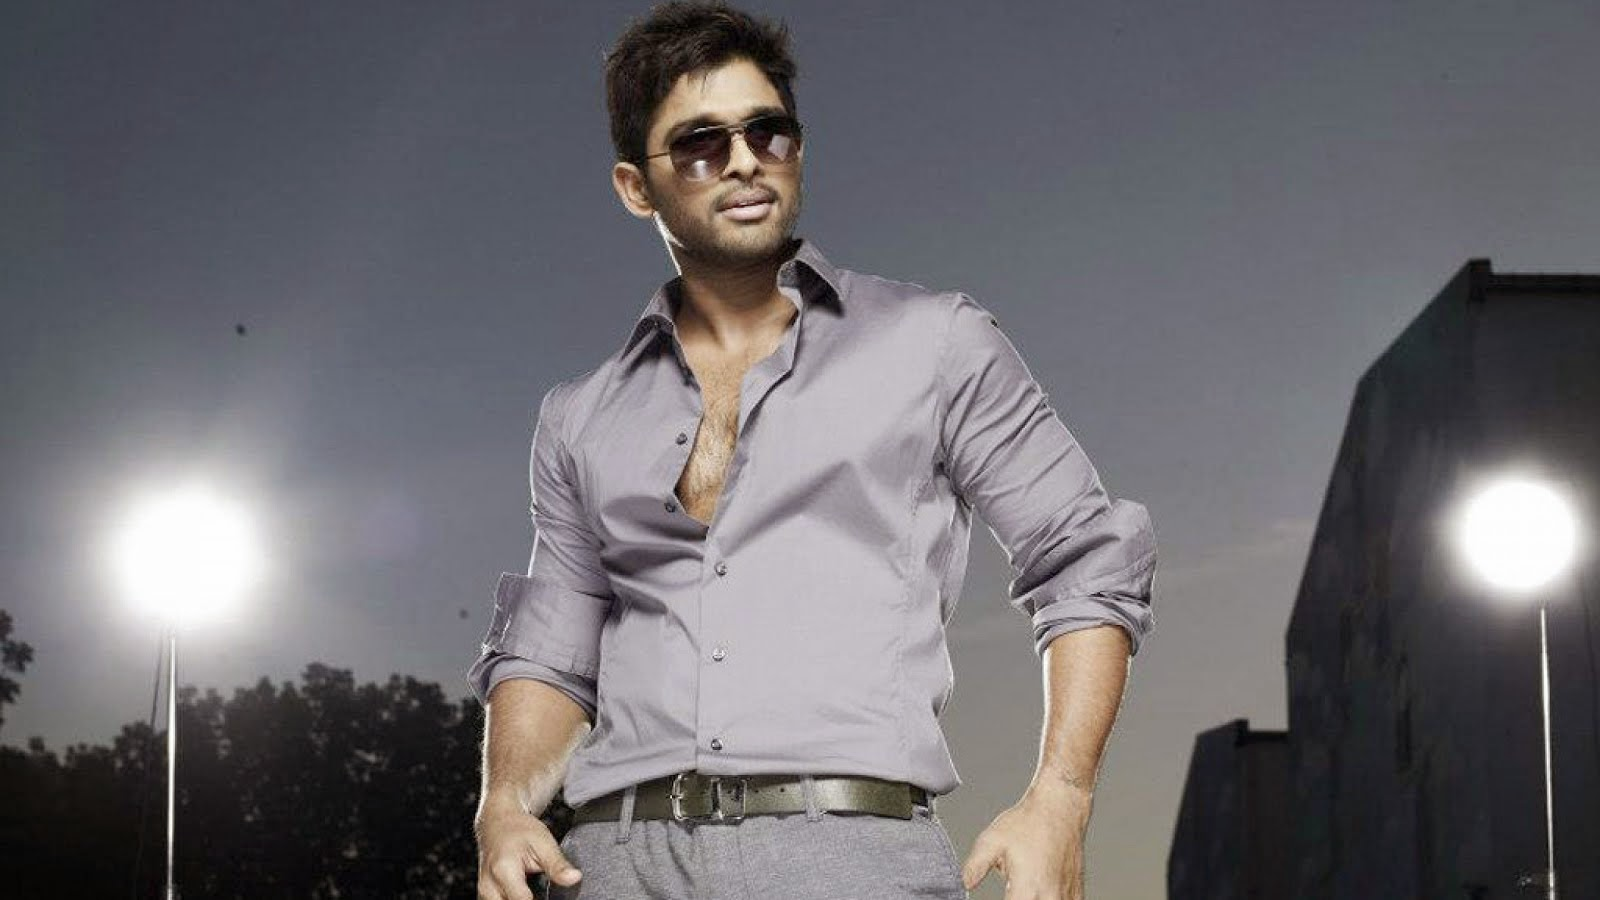 allu arjun wallpapers download free high definition